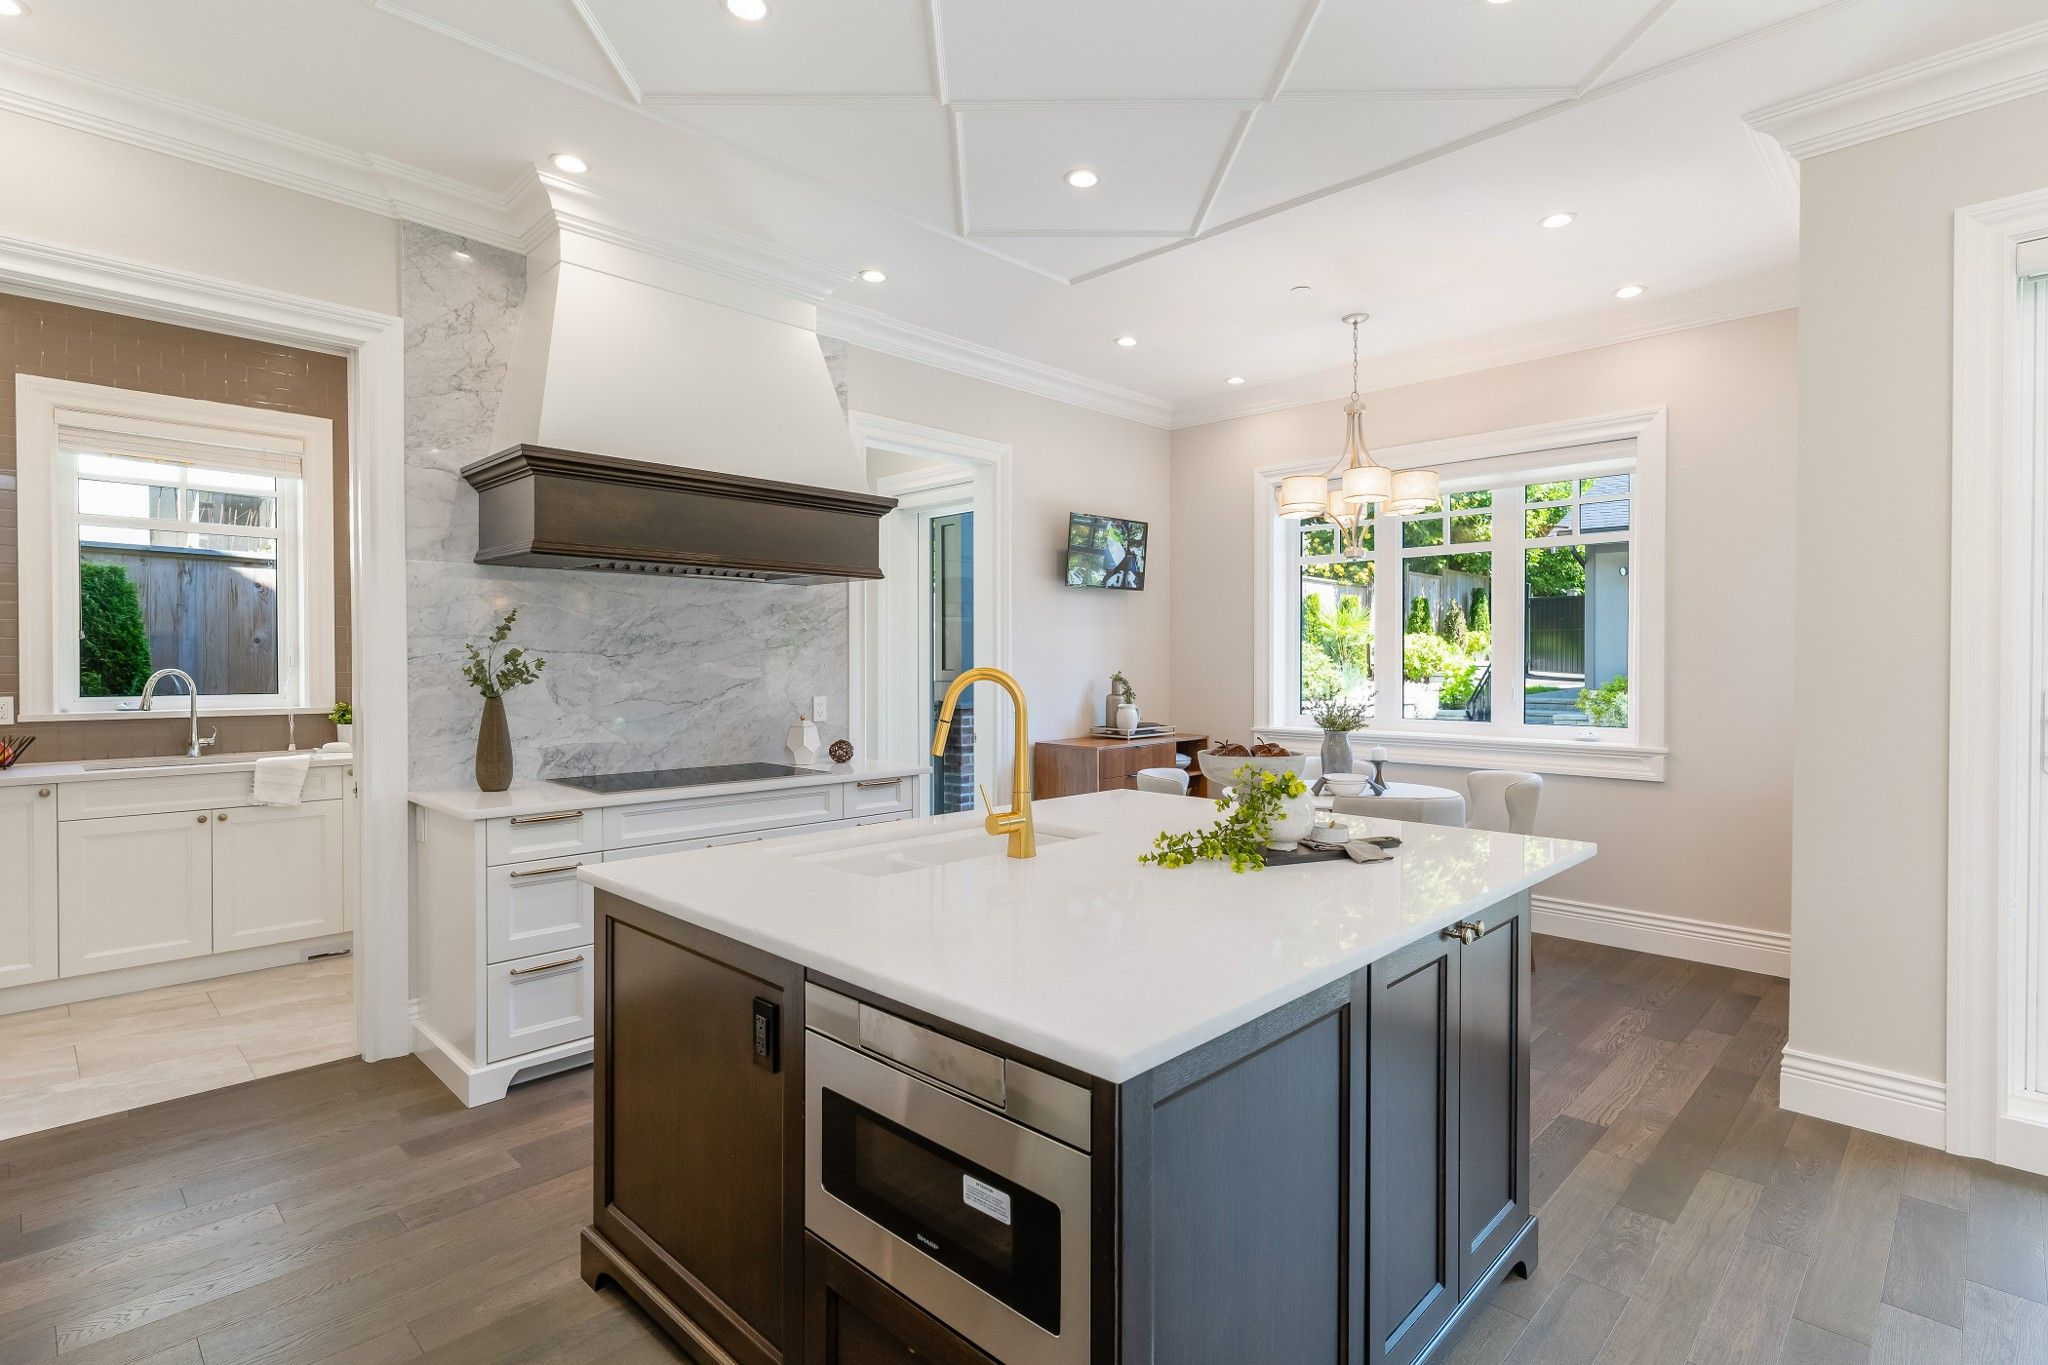 Photo 63: Photos: 5756 ALMA STREET in VANCOUVER: Southlands House for sale (Vancouver West)  : MLS®# R2588229